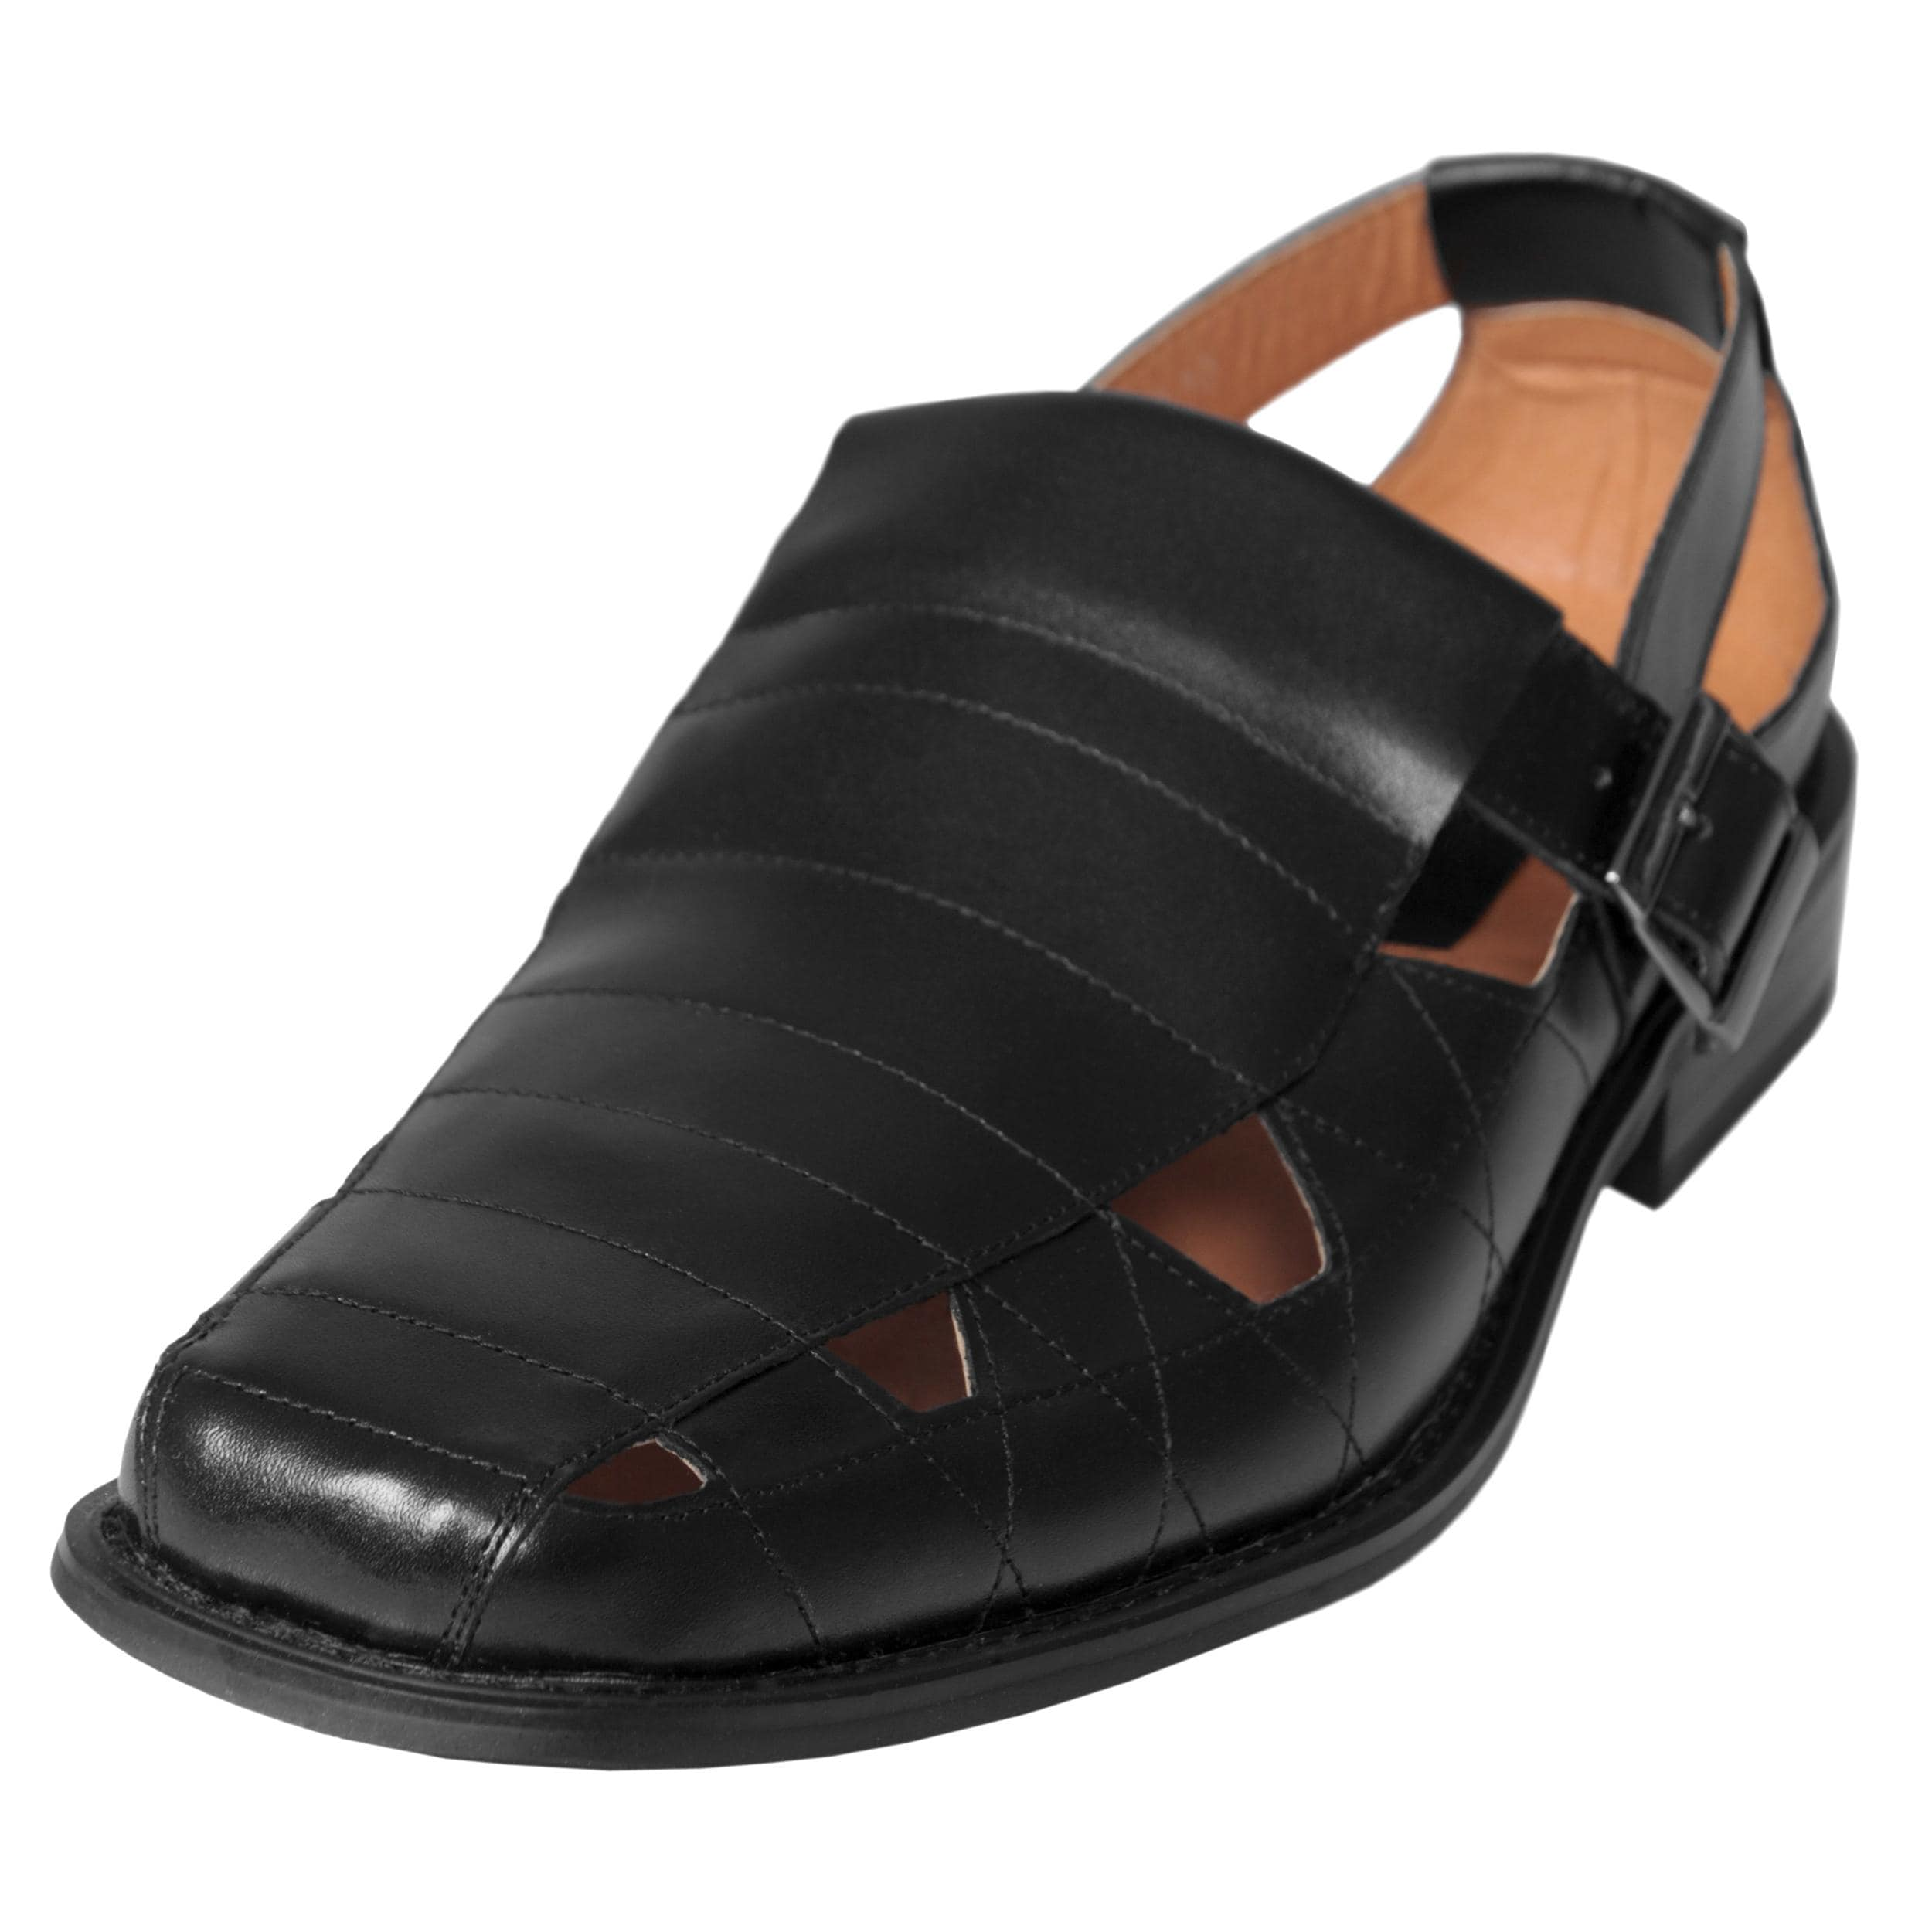 Boston Traveler Men's Leather Buckle Accent Sandals